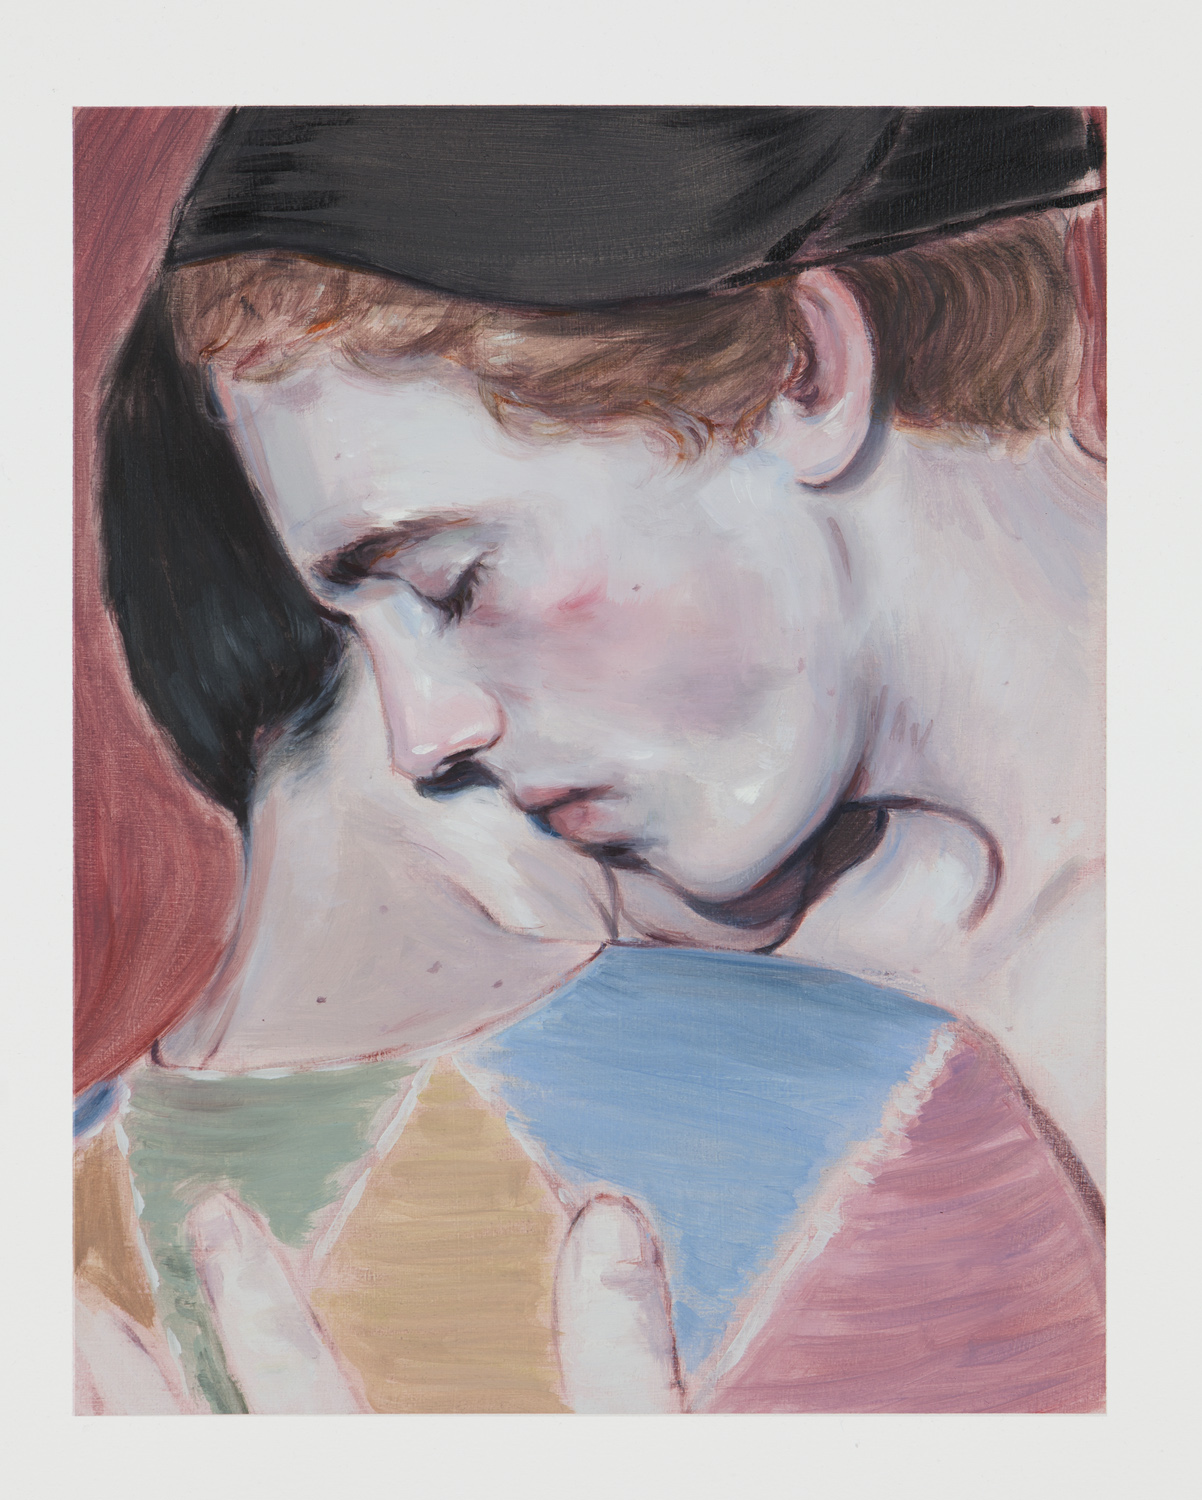 Kris Knight, The Embrace (The End of the Play) , 2017, oil on prepared cotton paper, 14 x 11 inches SOLD